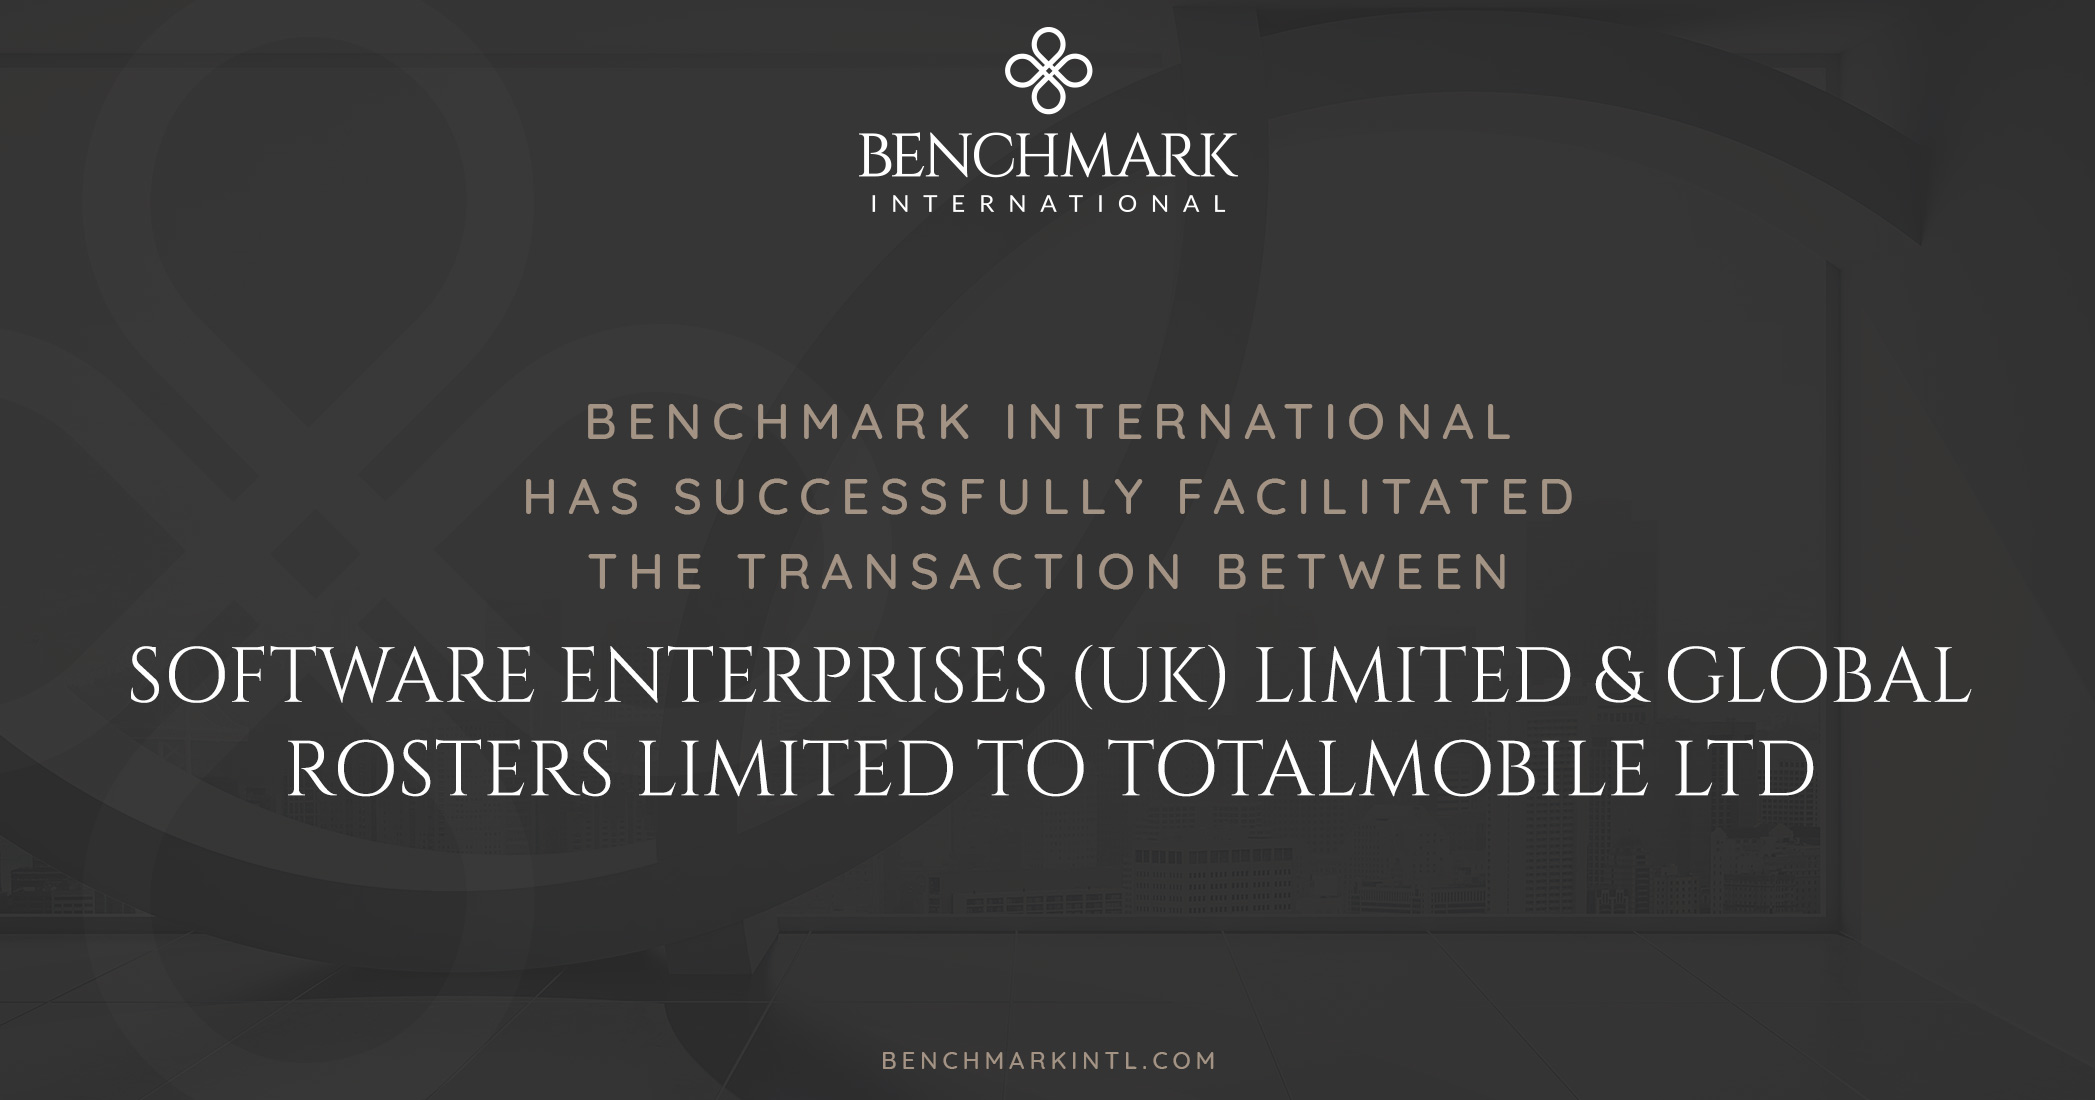 Benchmark International Successfully Facilitated the Transaction OF Software Enterprises (UK) Limited & Global Rosters Limited to Totalmobile Ltd